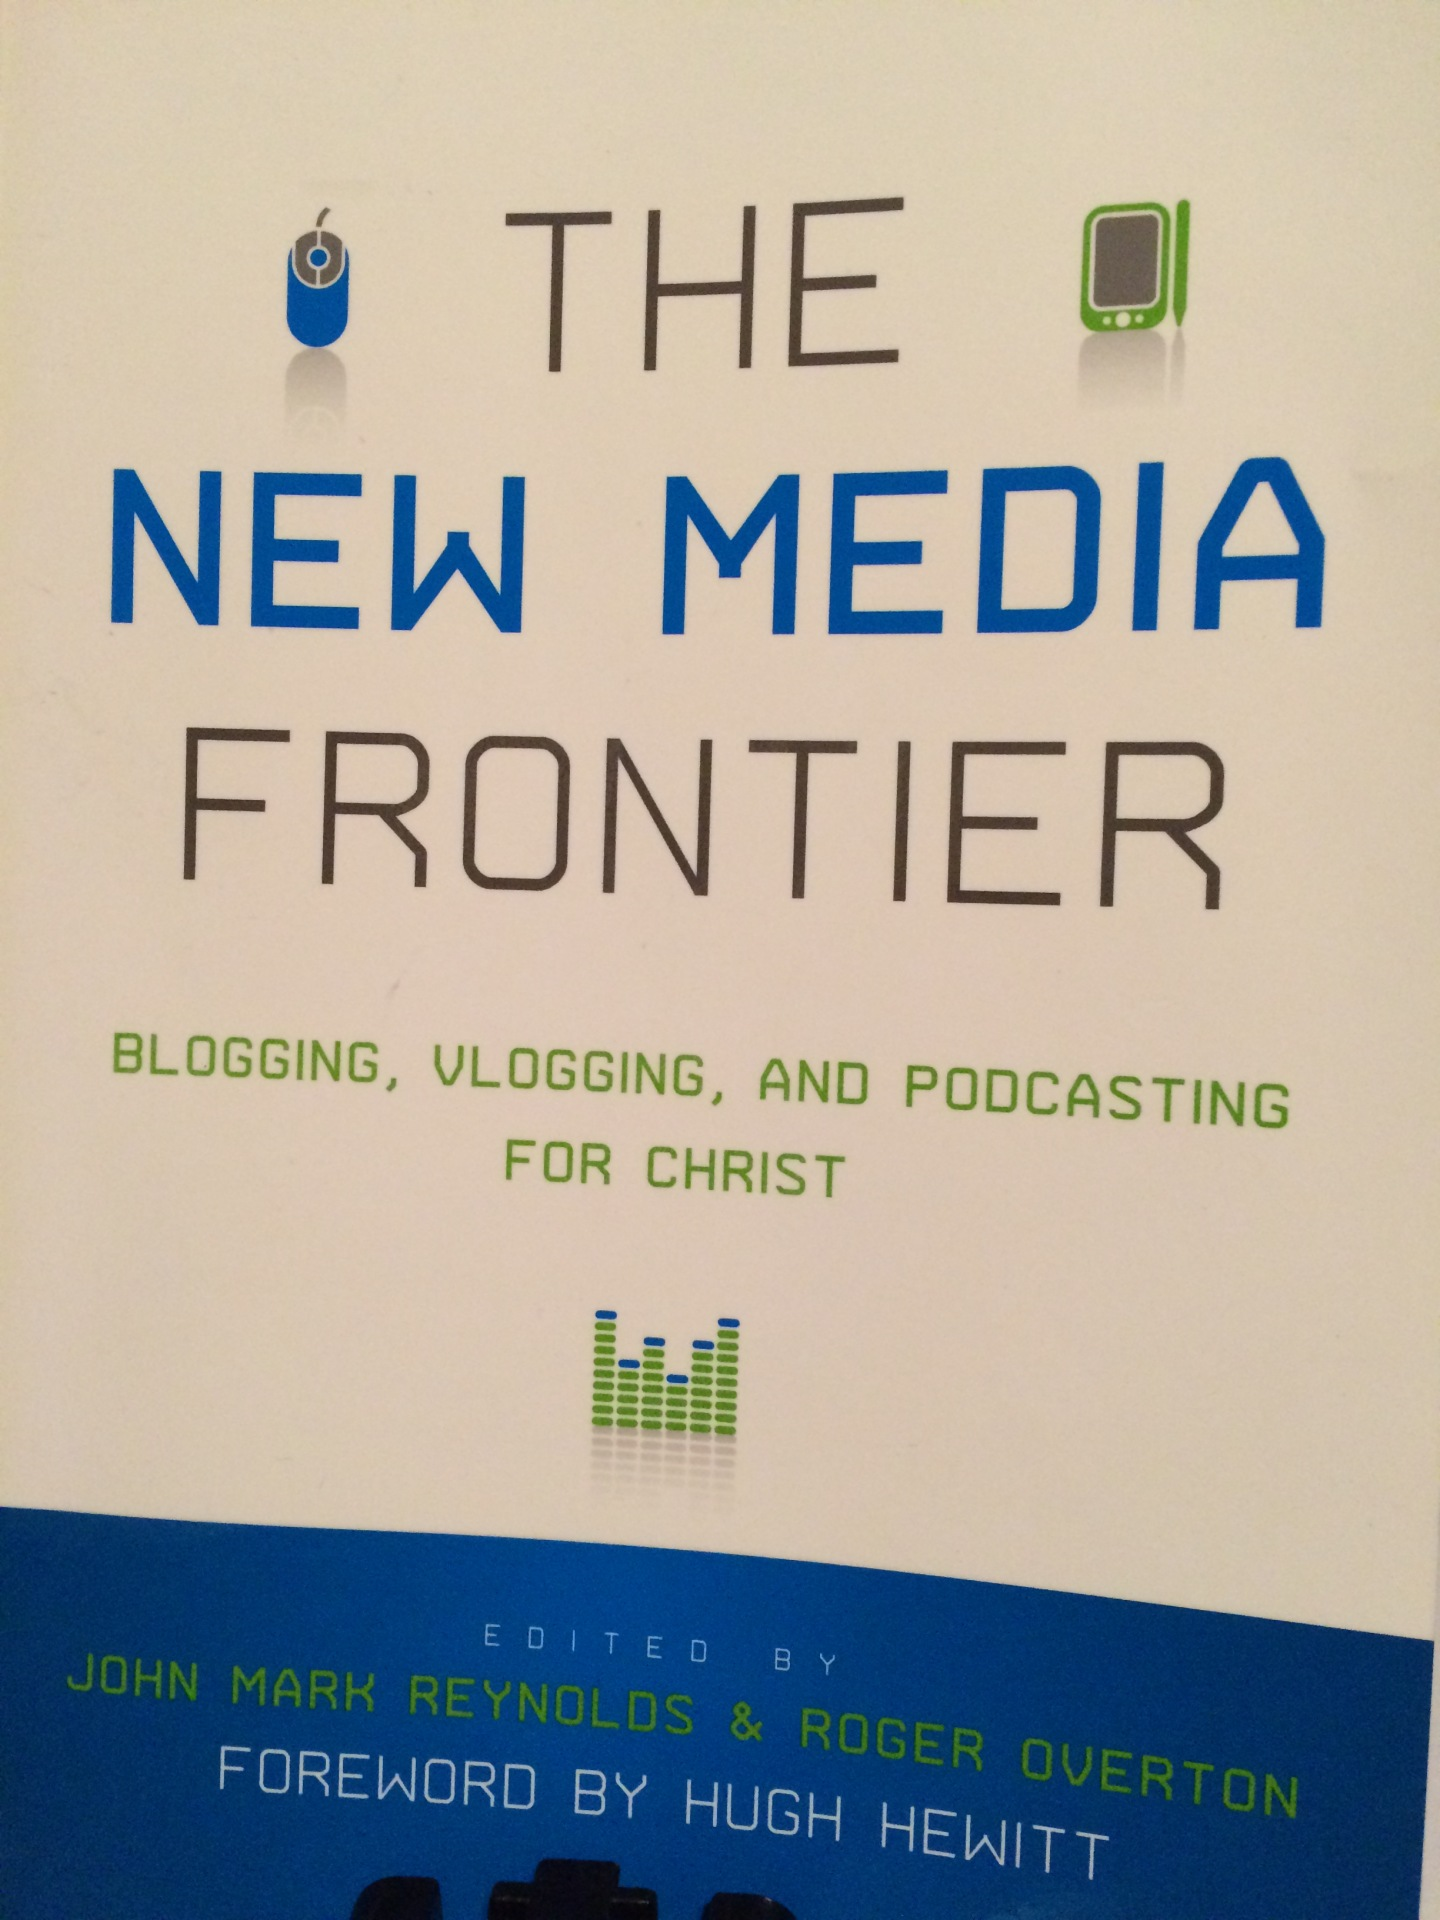 The New Media Frontier